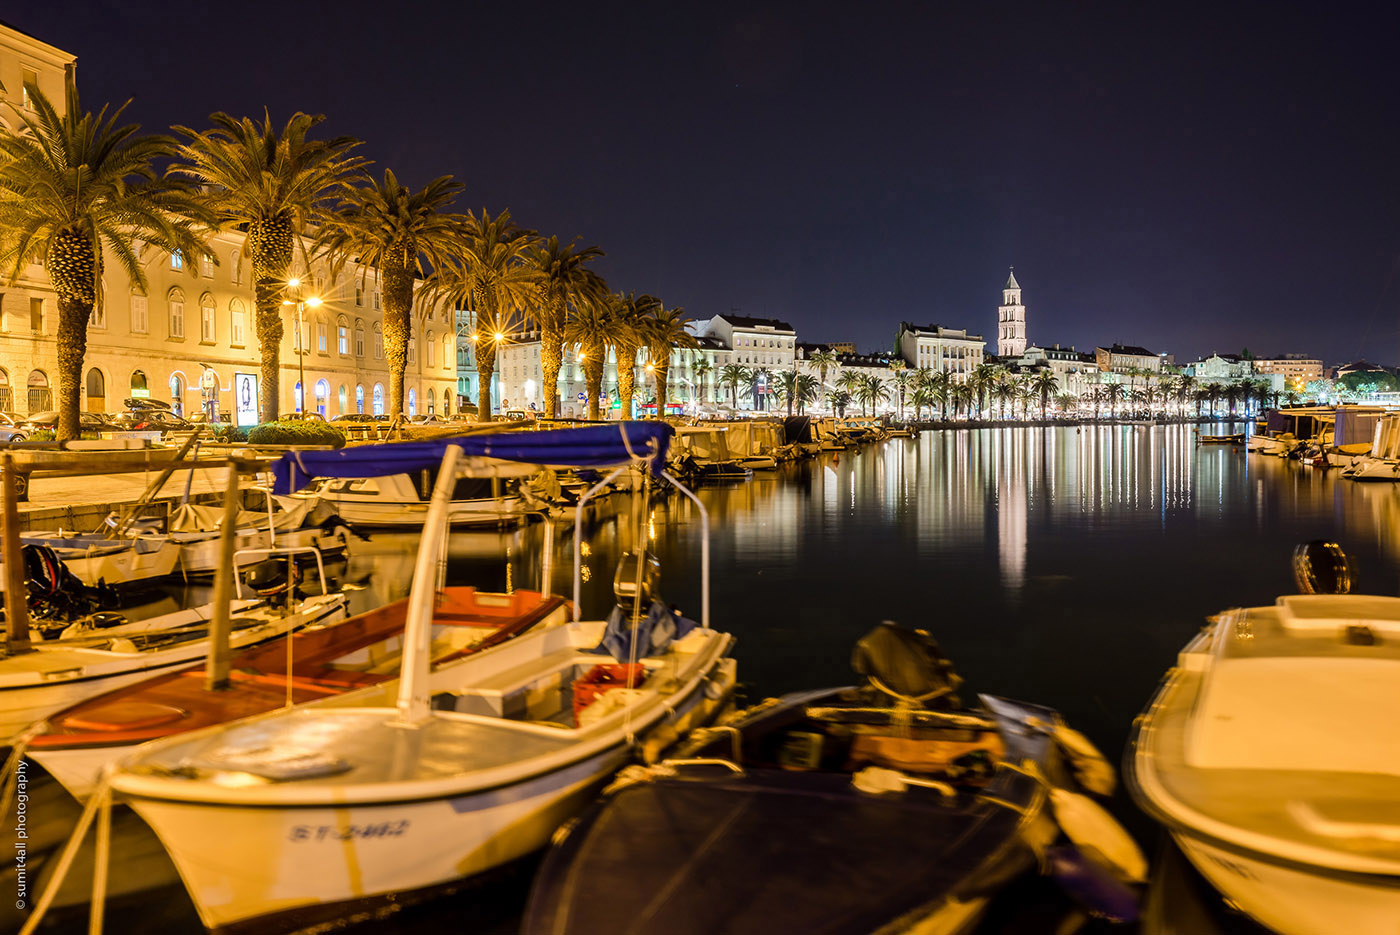 Late evening colors in Split, Croatia